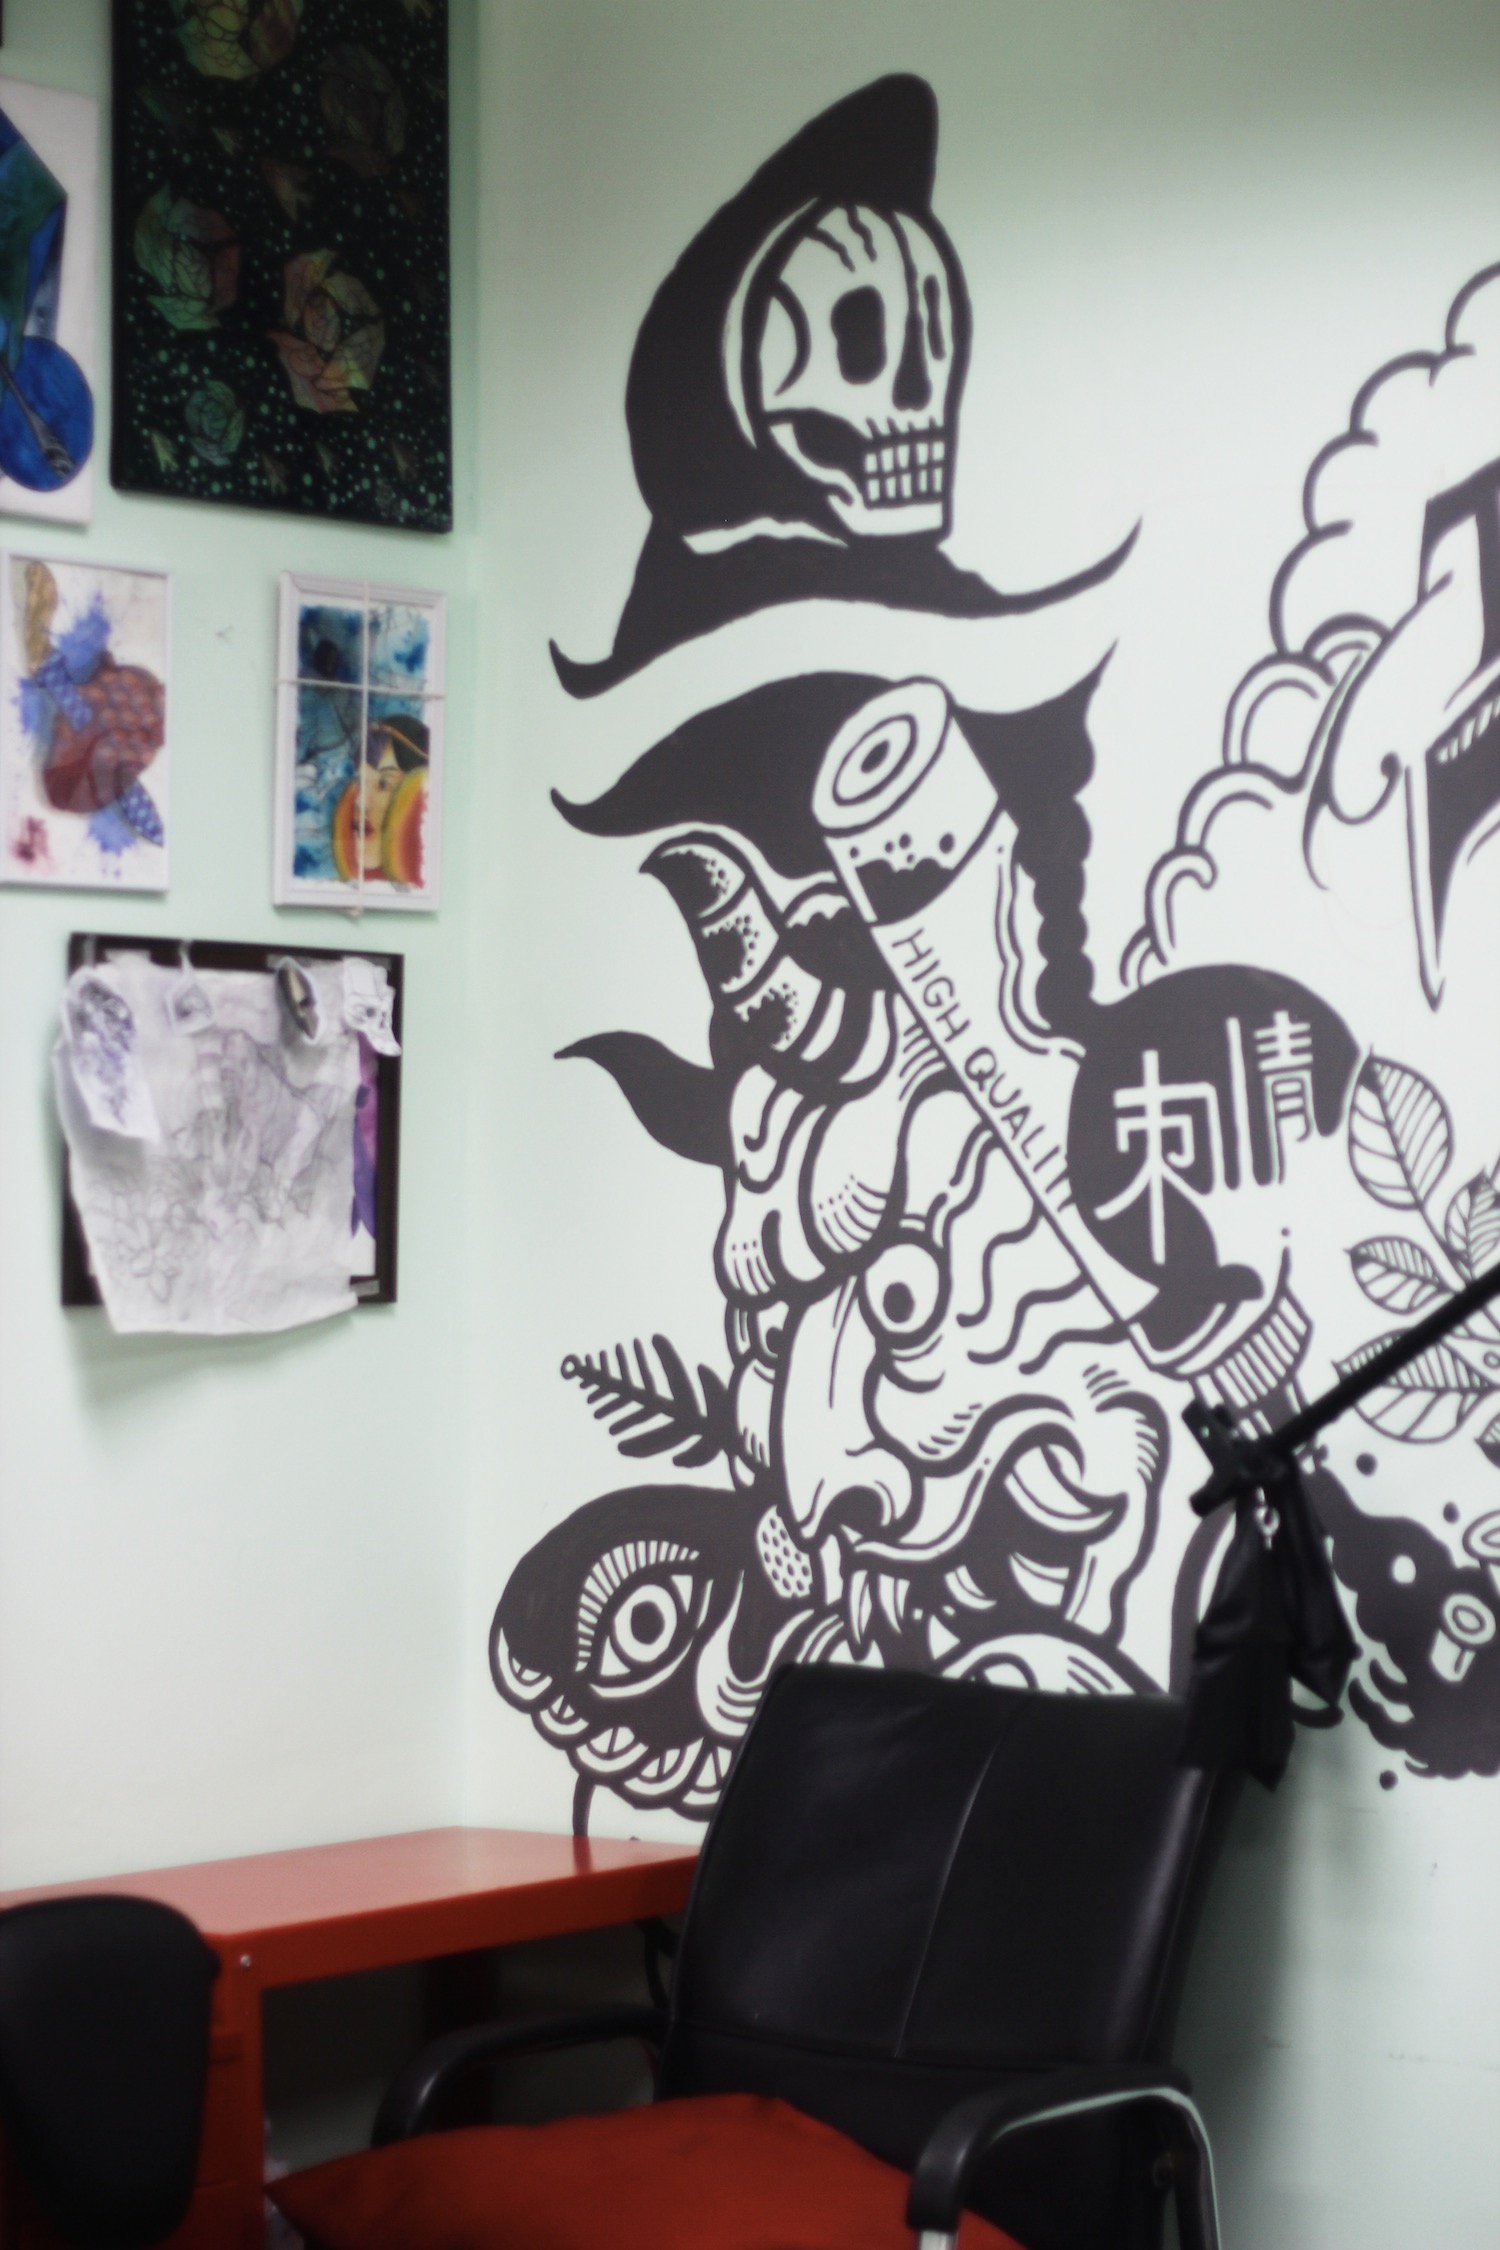 afd421e4869fe Inking aside, Tattoo Parlor Malaysia plays a range of genres at its  premises, most prominently being rock with music from the likes of Guns N'  Roses, ...